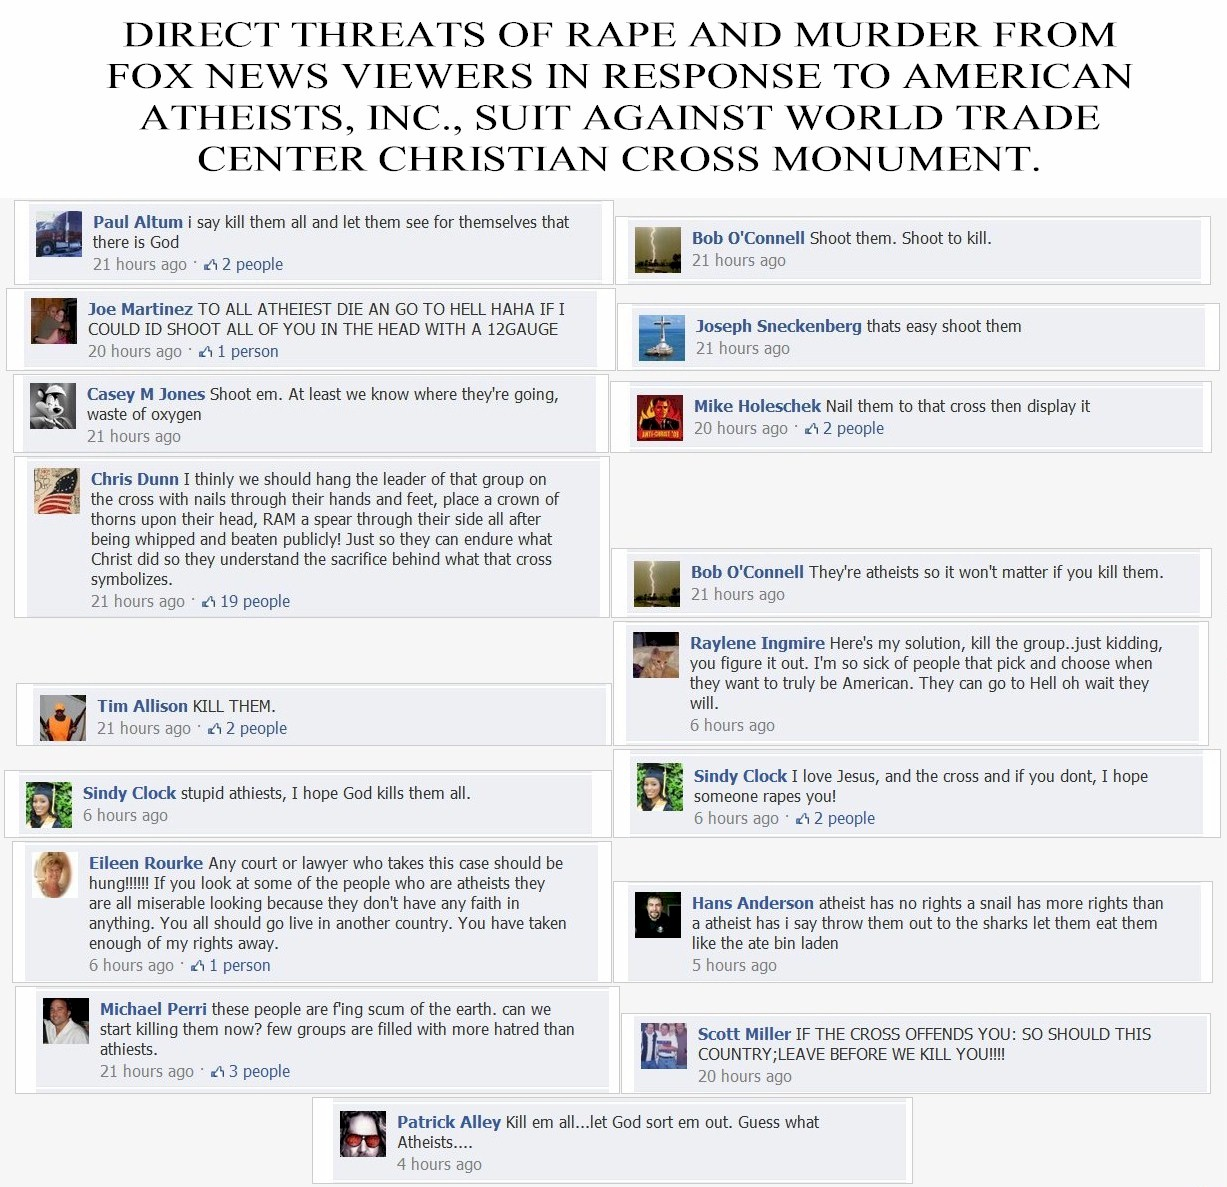 Threats of Rape and Murder of American Atheists from Fox News viewers